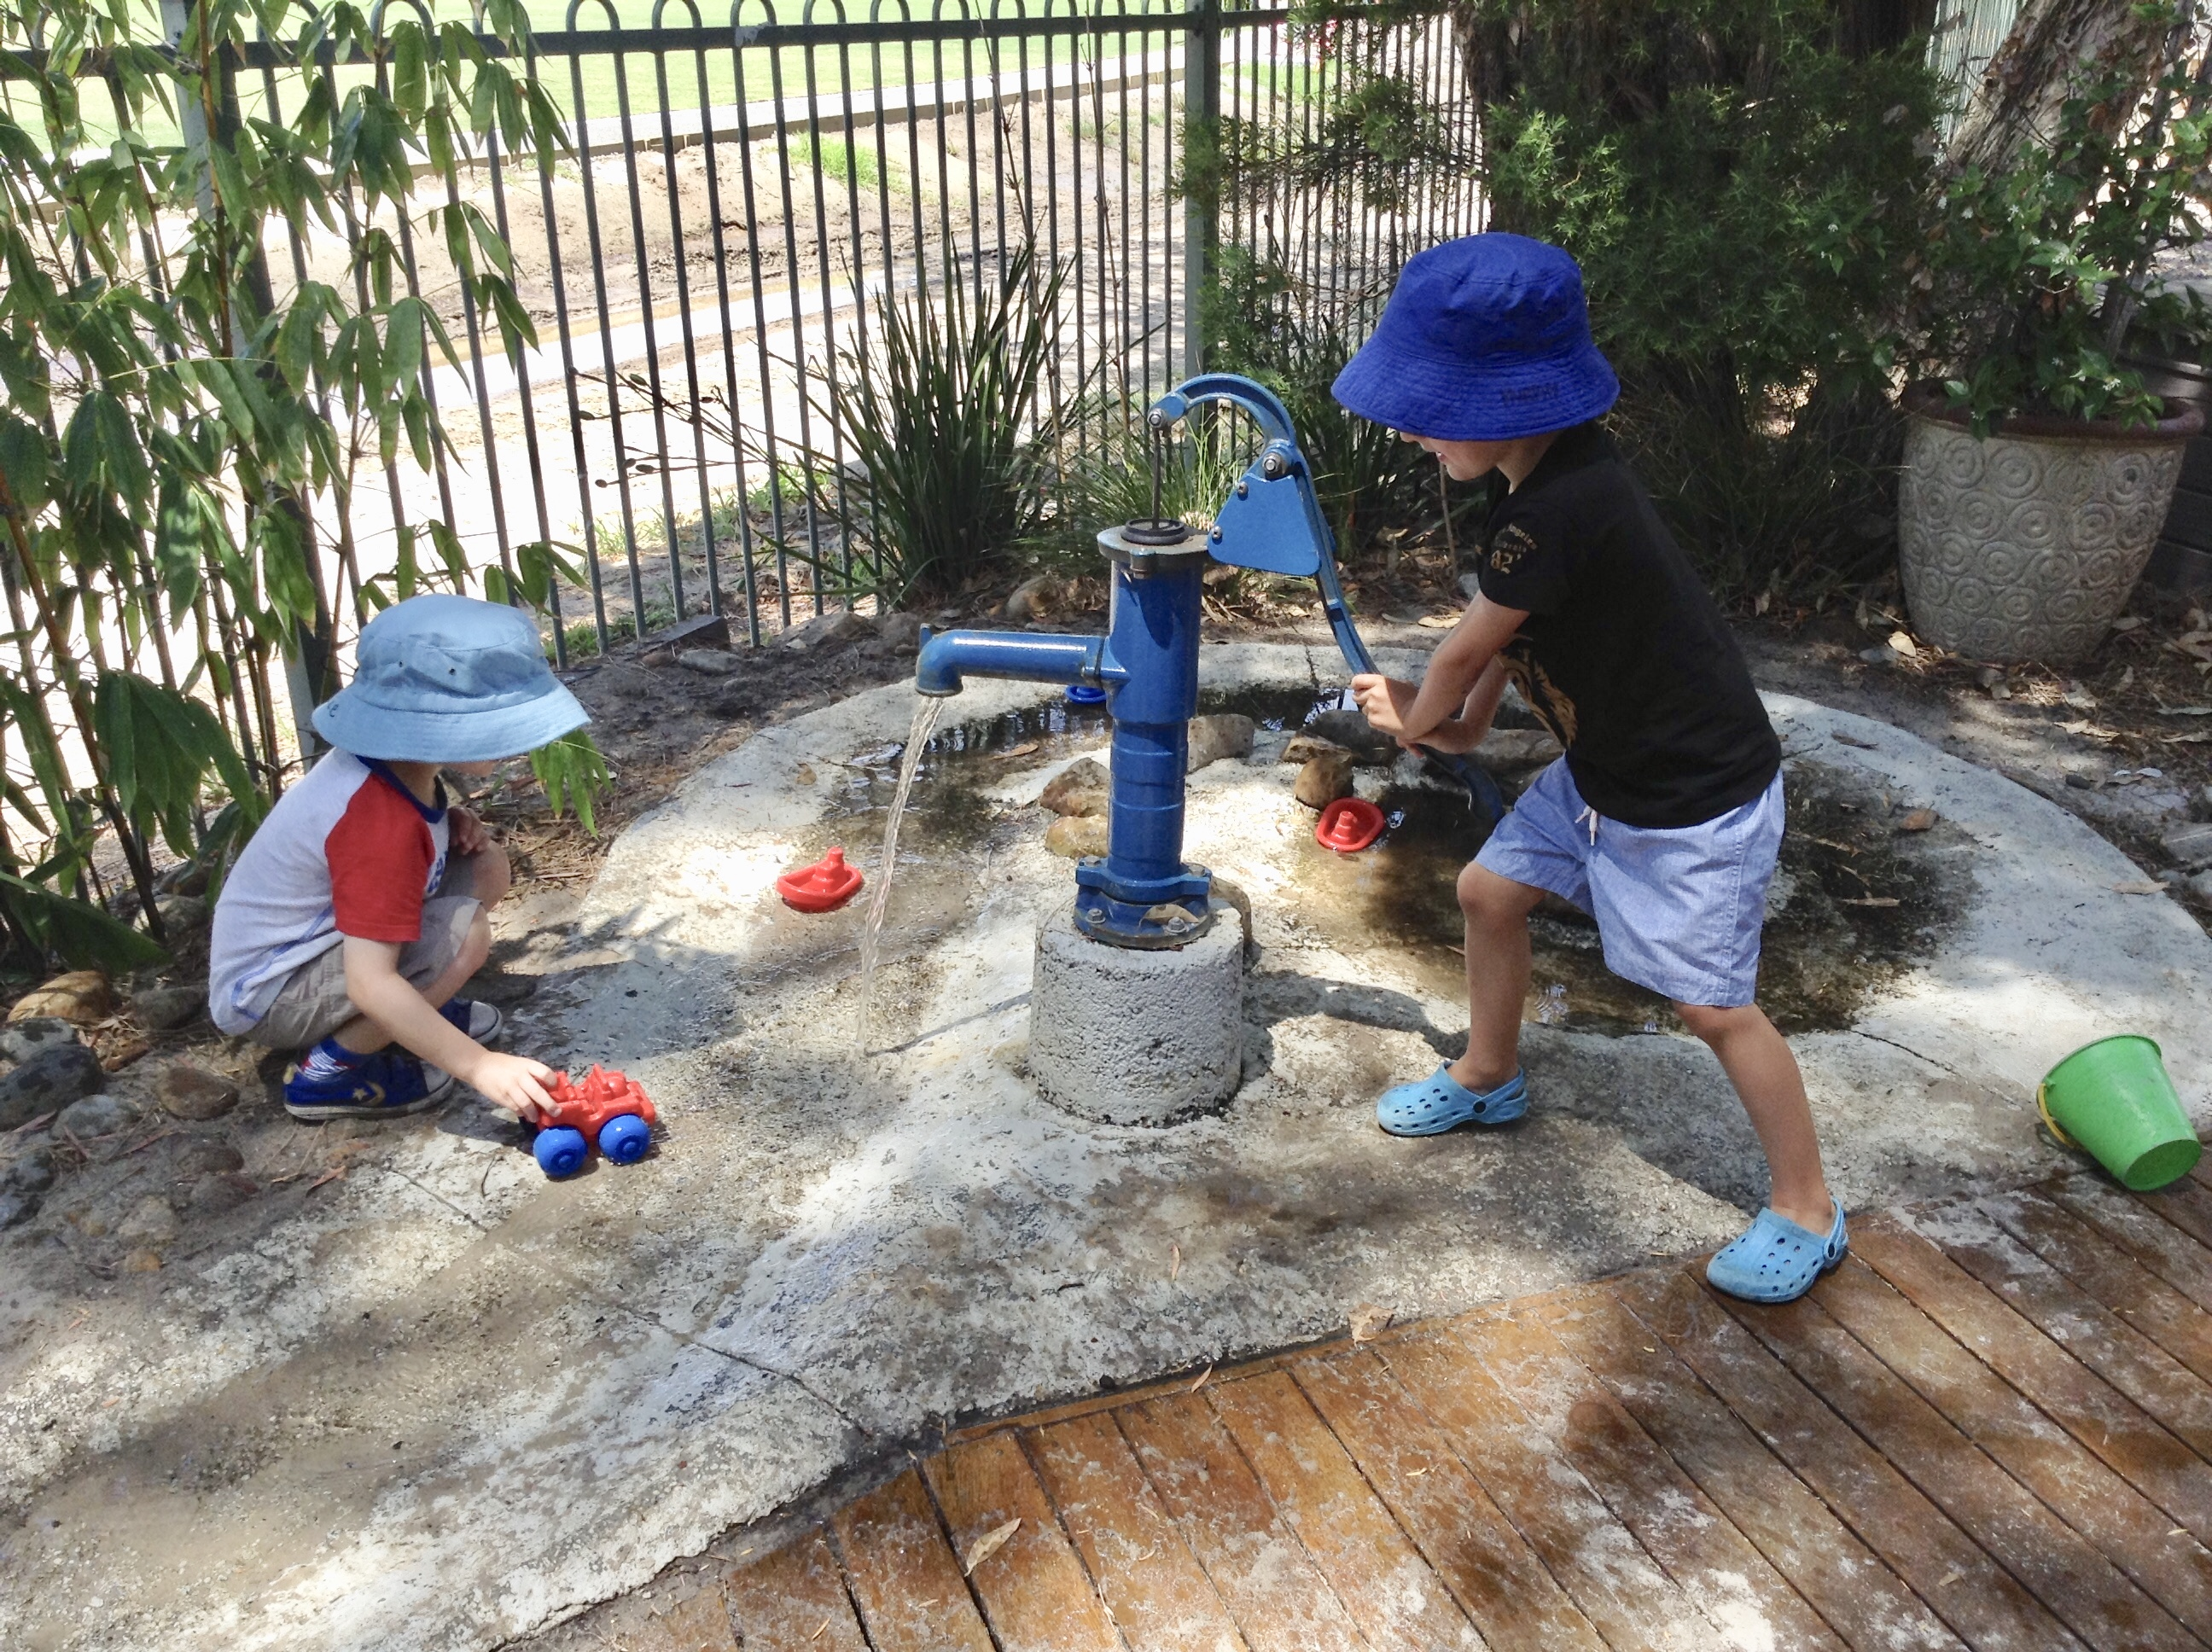 Water play at Jack and Jill Kindergarten Beaumaris